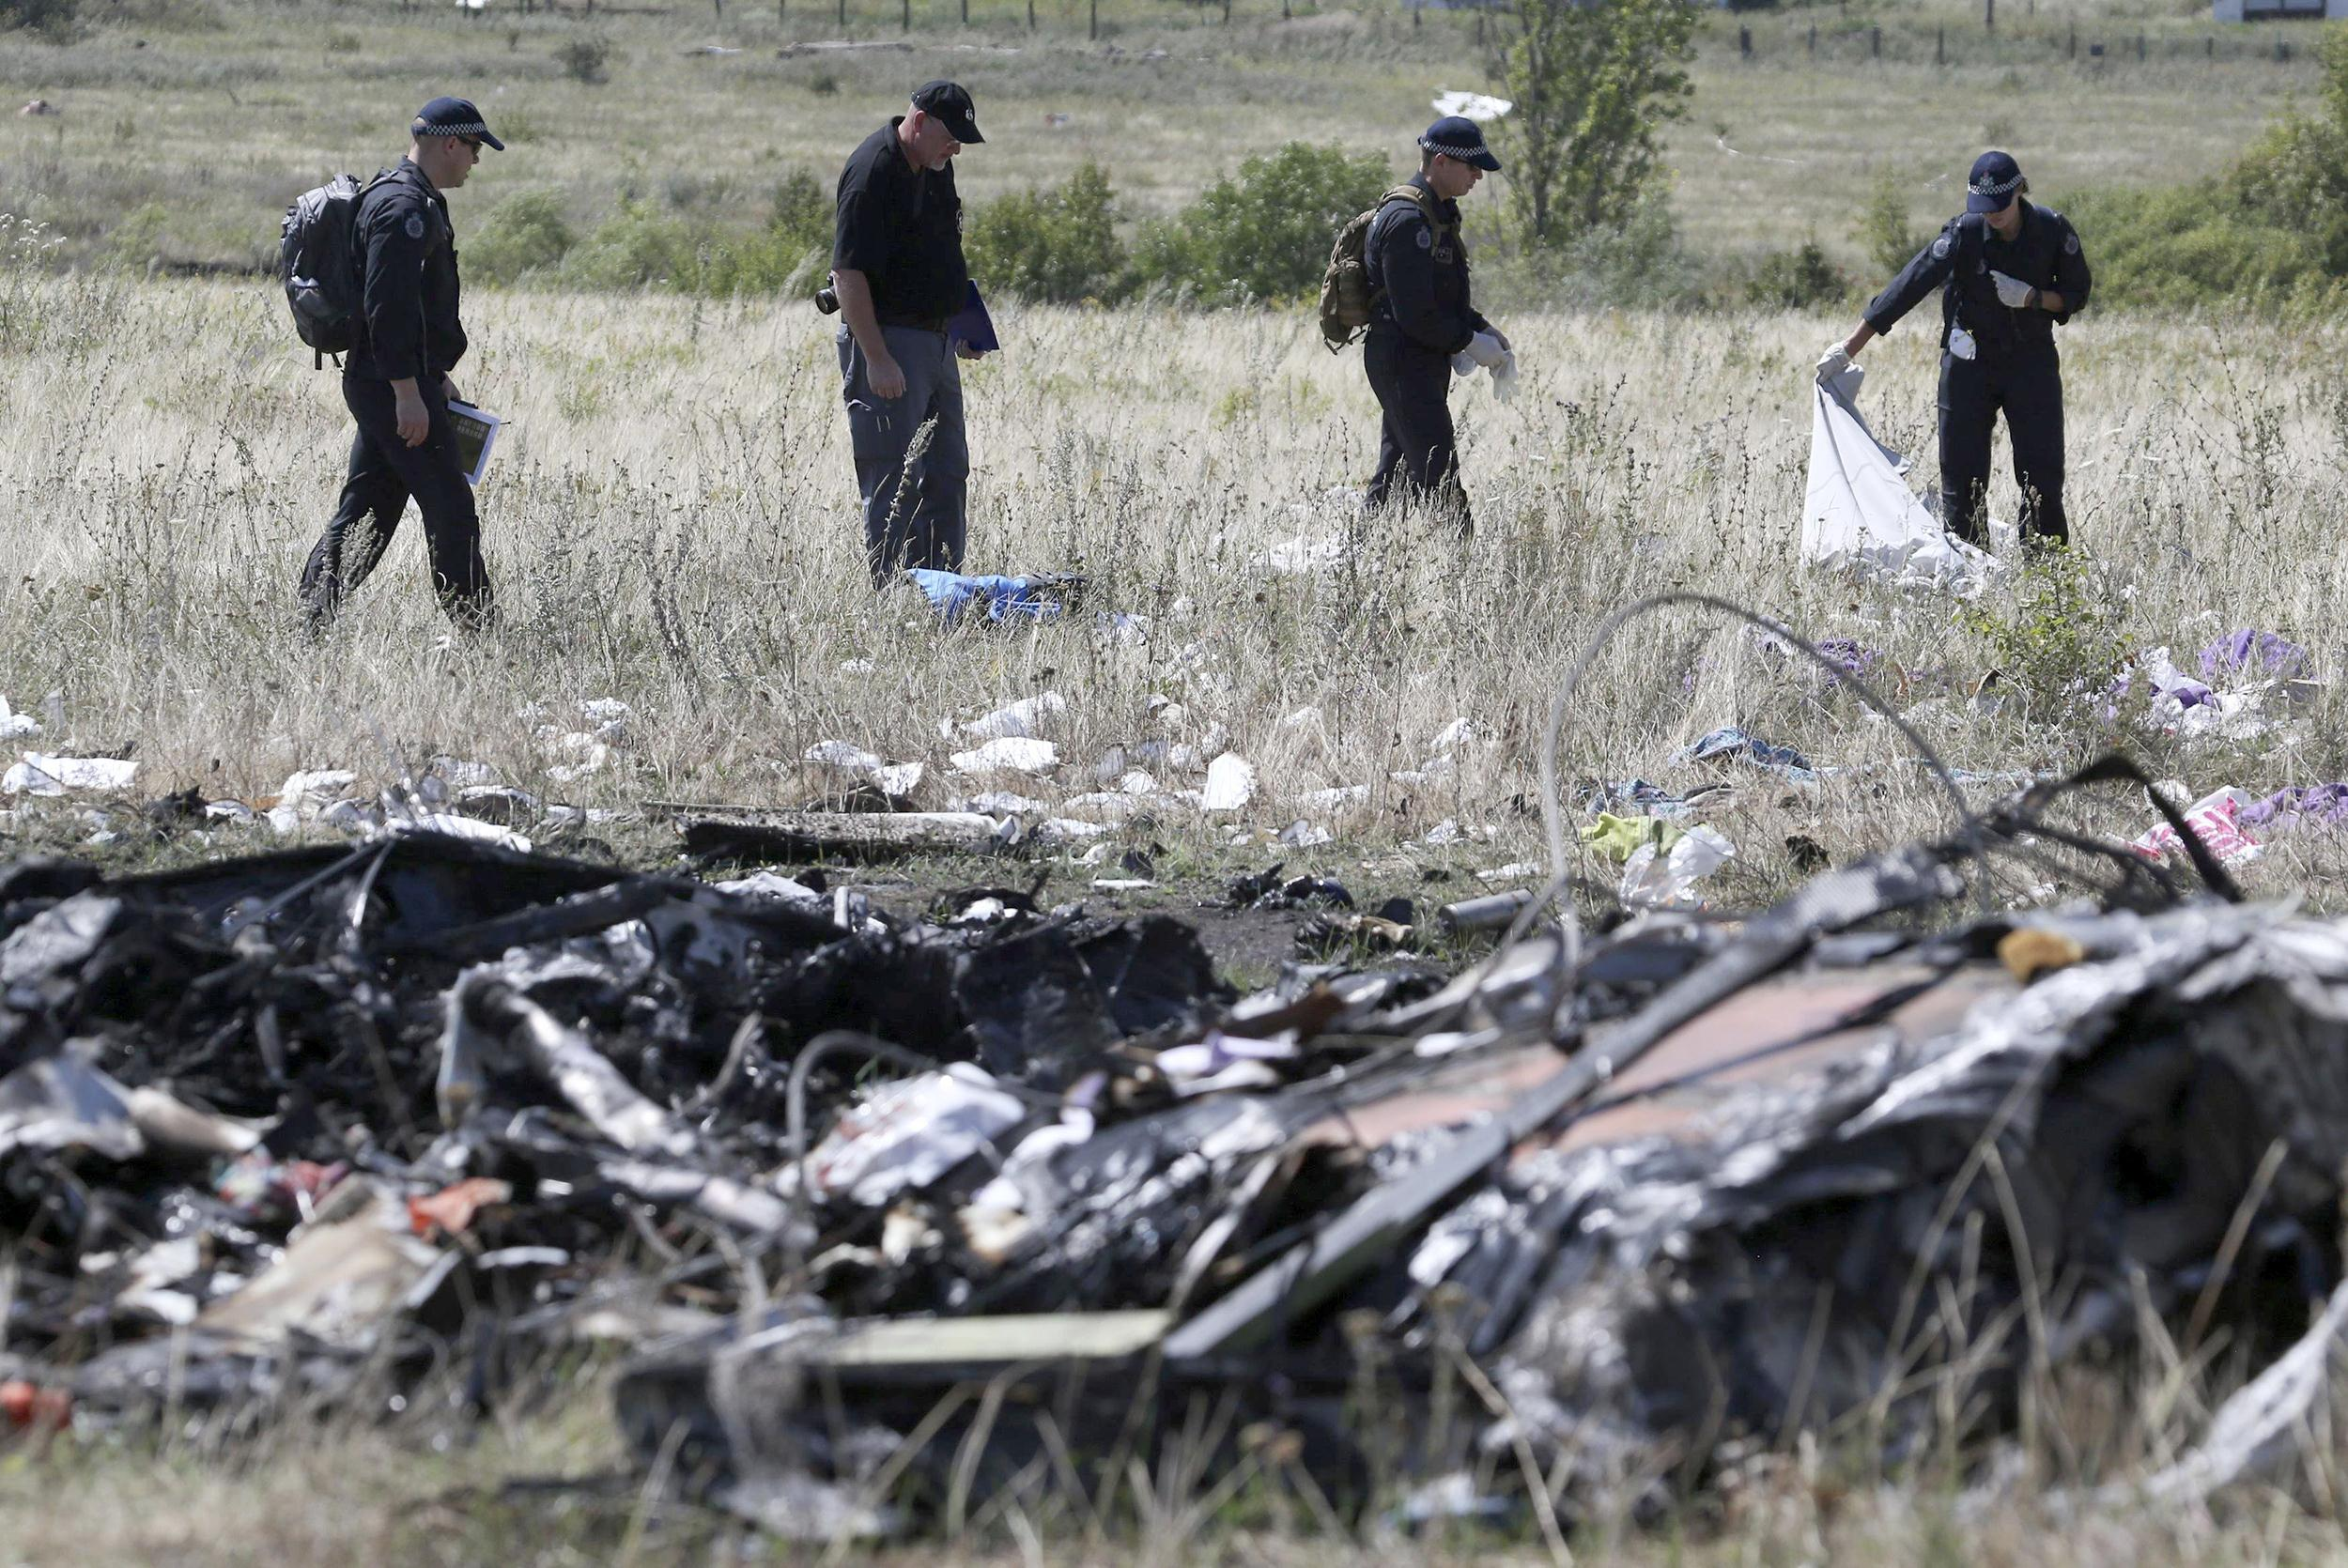 Image: Members of a group of international experts inspect the territory at the site where the downed Malaysia Airlines Flight MH17 crashed in Donetsk region